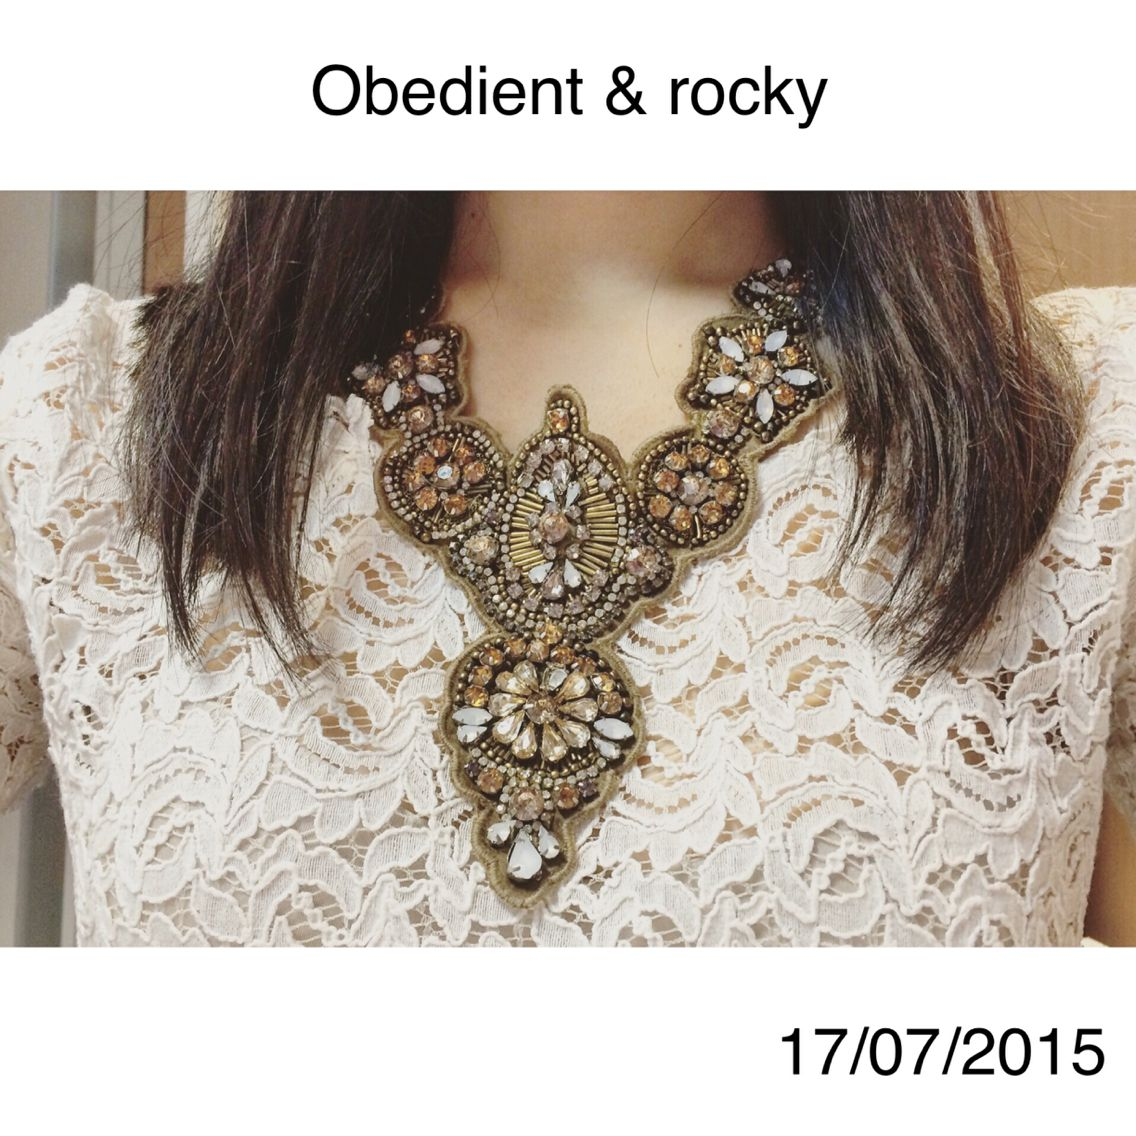 Obedient & rocky